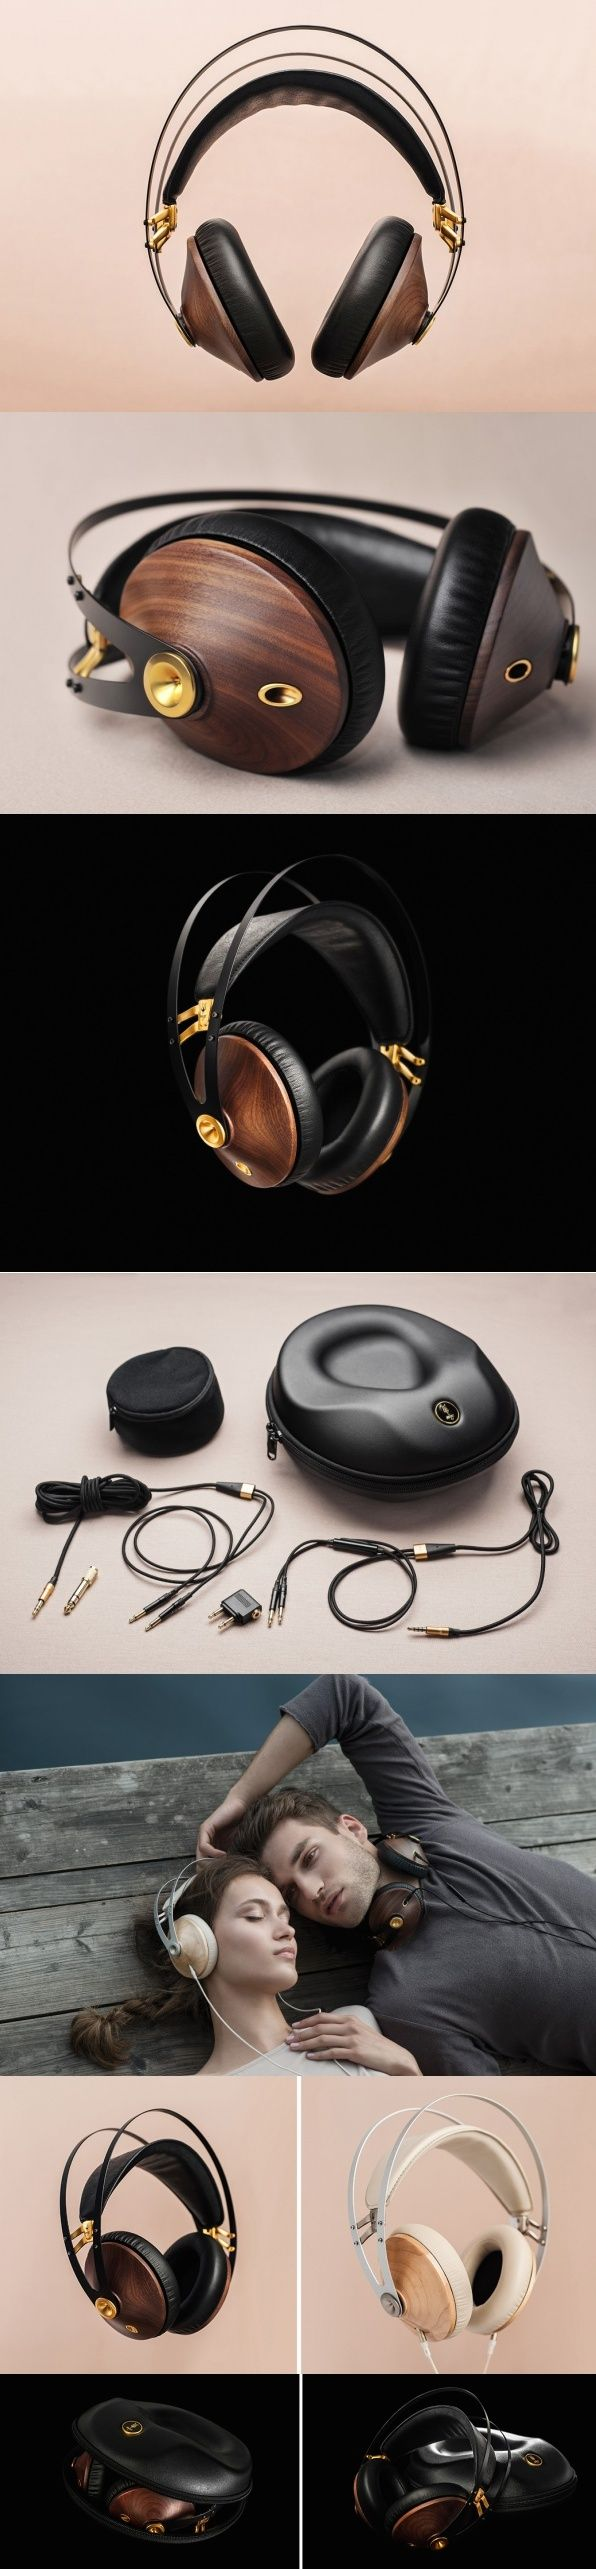 1000+ images about Audio / Headset on Pinterest | Music ...